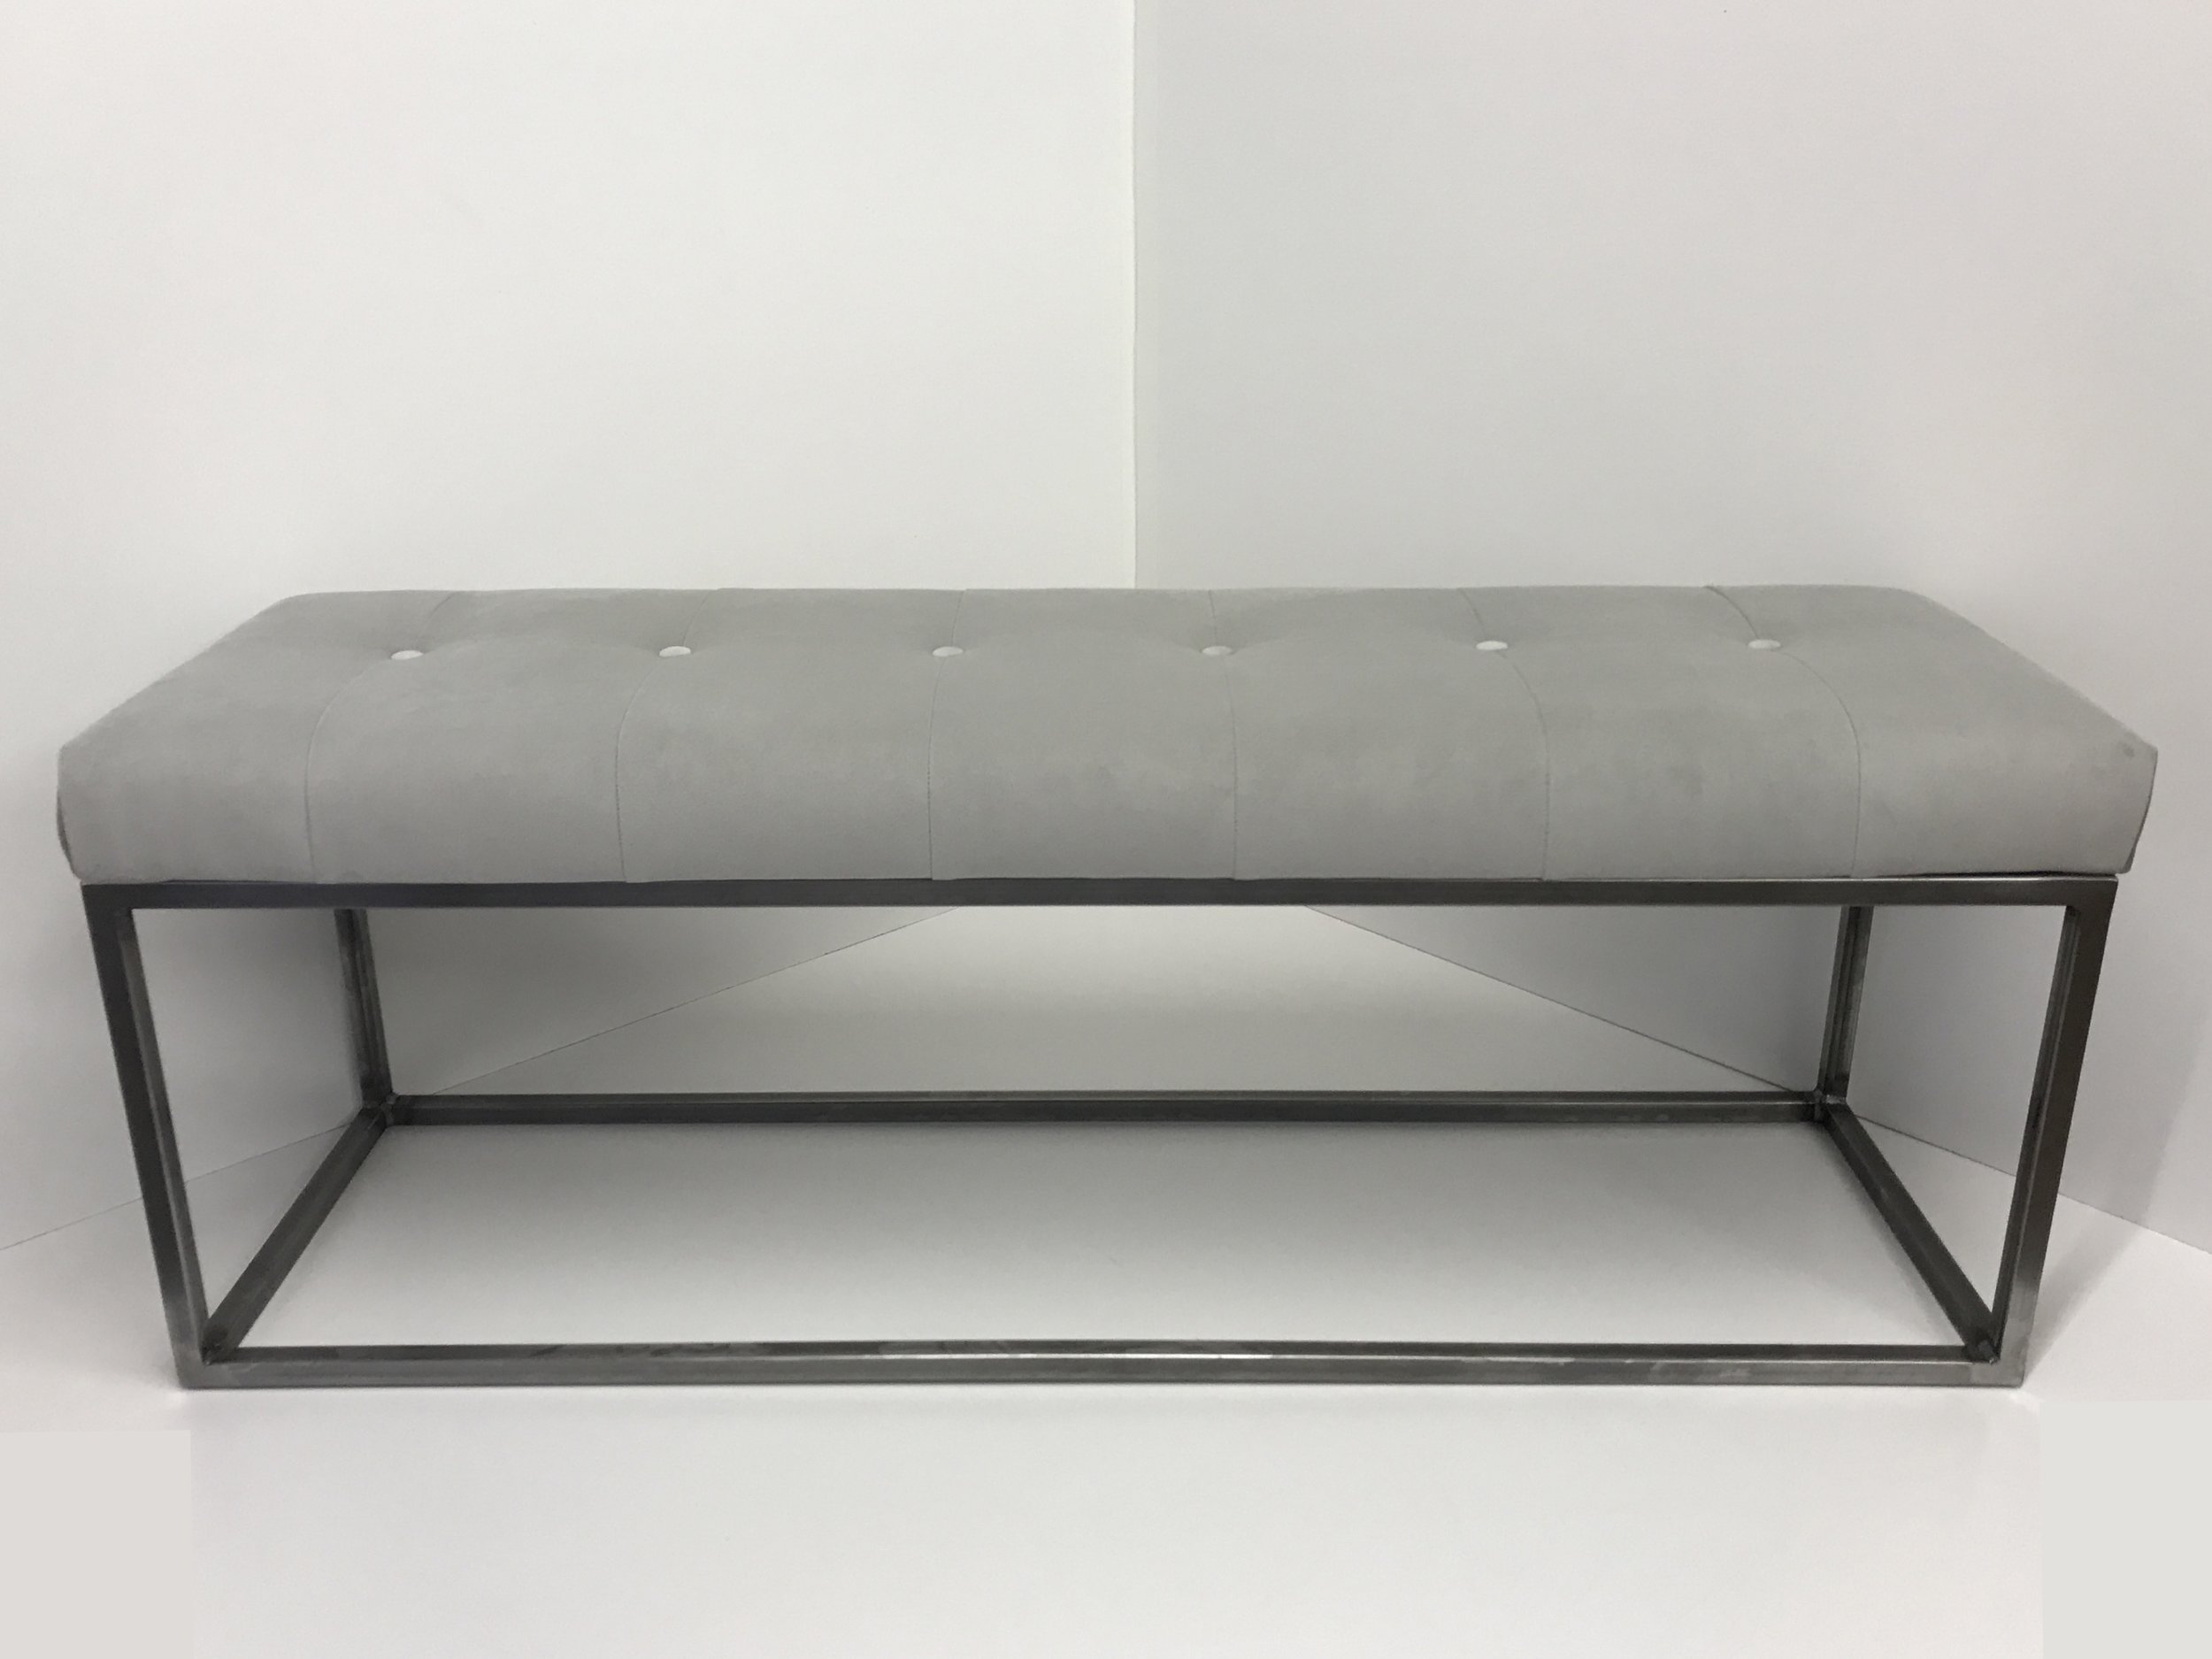 Boxed Frame Panel Bench